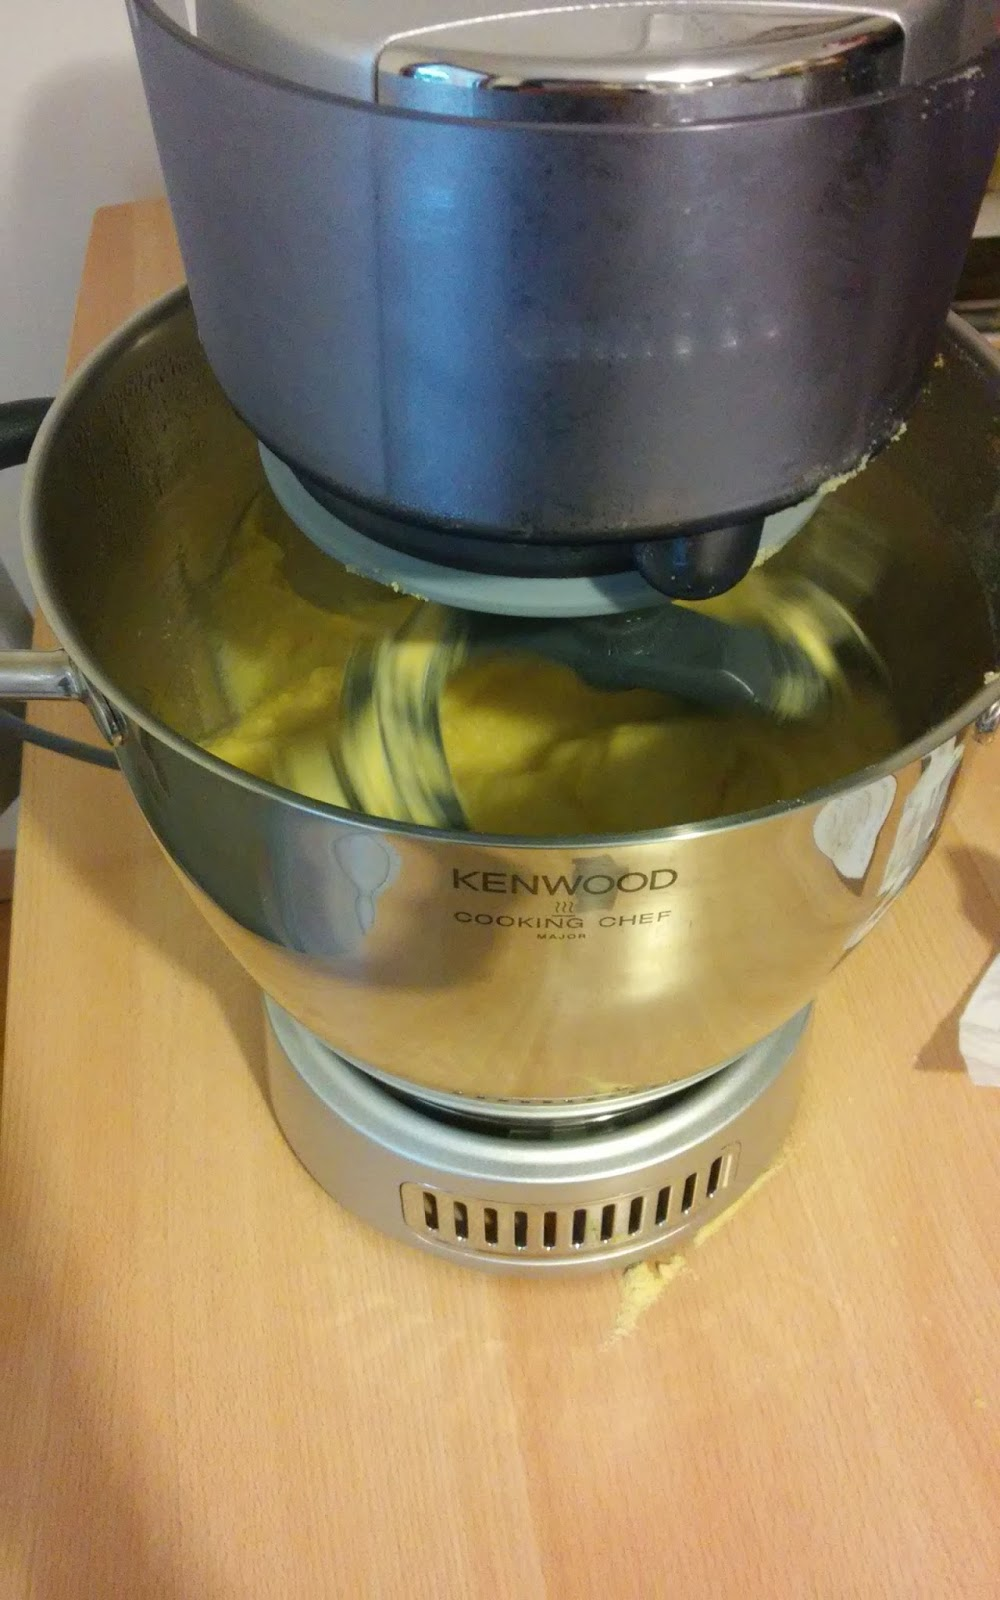 me e la cucina...: Polenta con Cooking Chef Kenwood